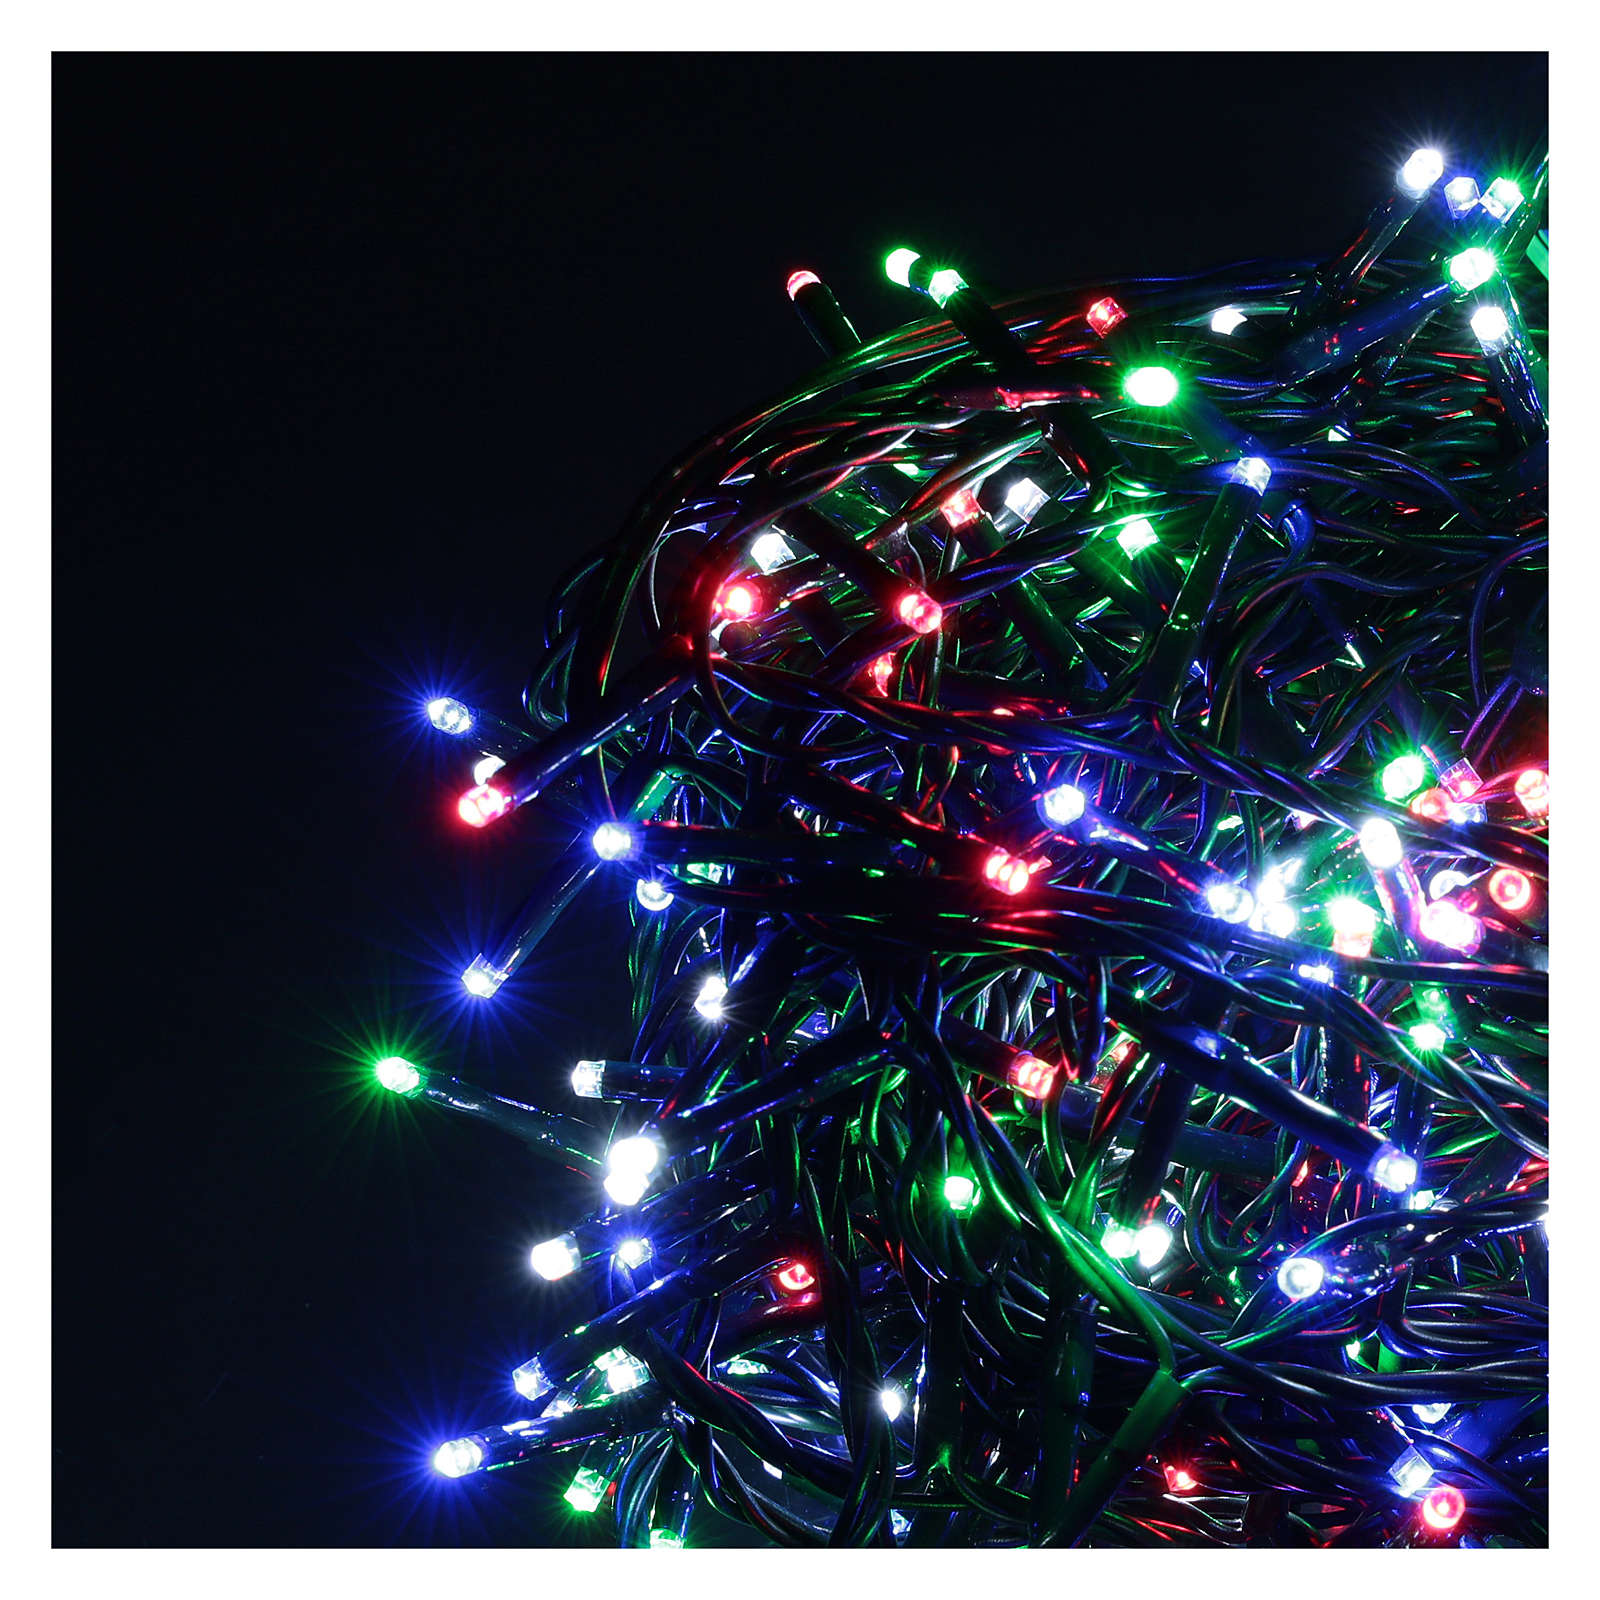 Catena luminosa 500 led multicolor con telecomando remoto esterno 220V 3